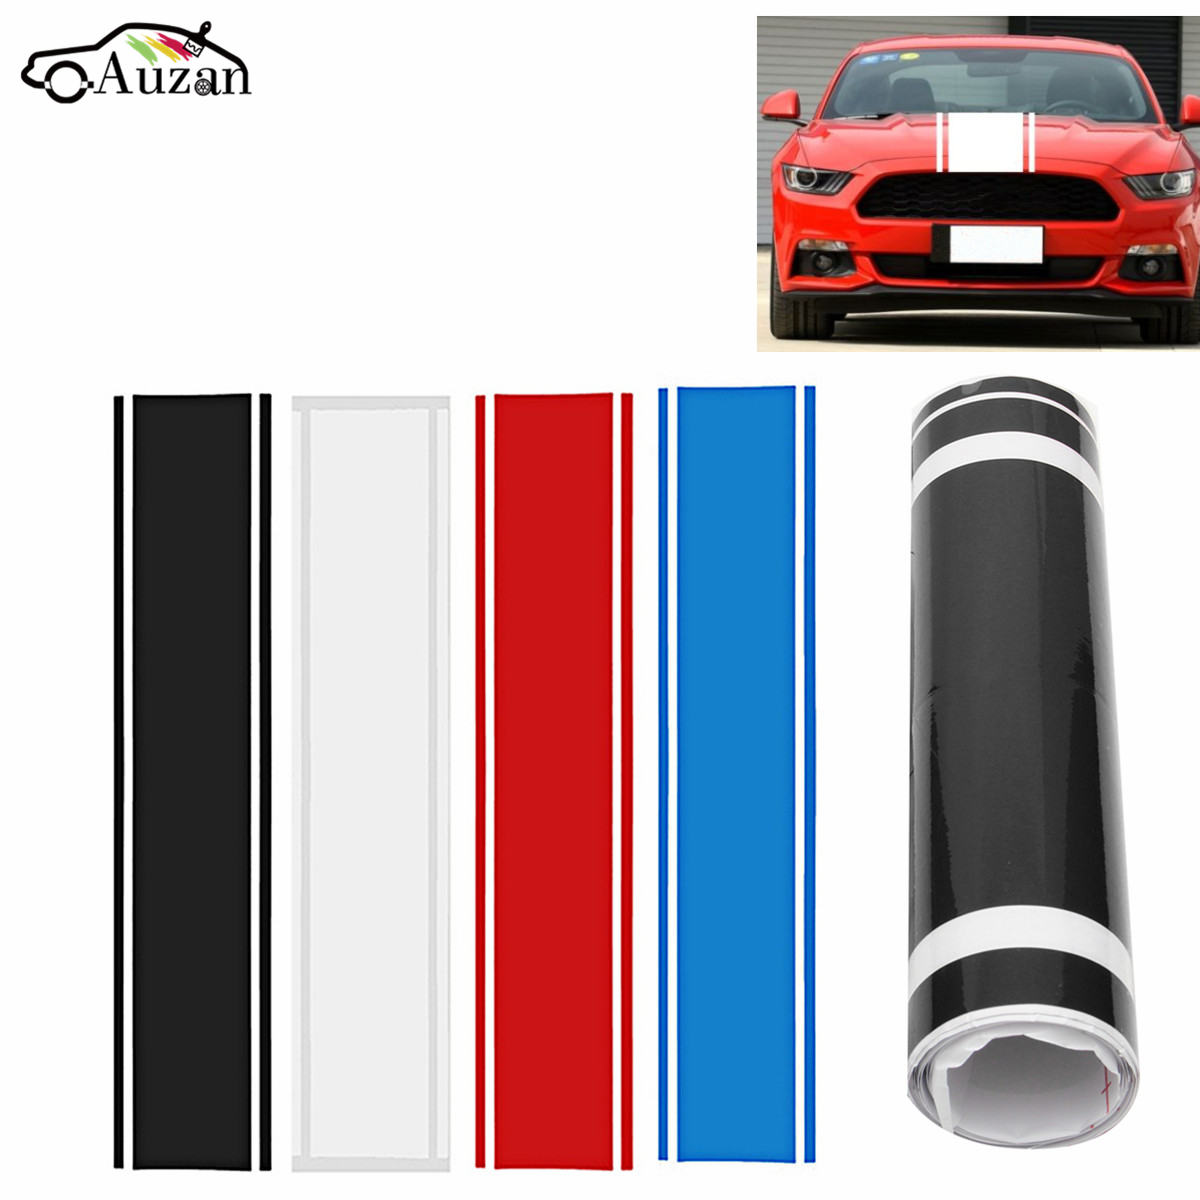 Buy Stripes Car Vinyl And Get Free Shipping On AliExpresscom - Vinyl stripes for motorcyclescheckered universal motorcycle cafe racer racing vinyl stripe tape